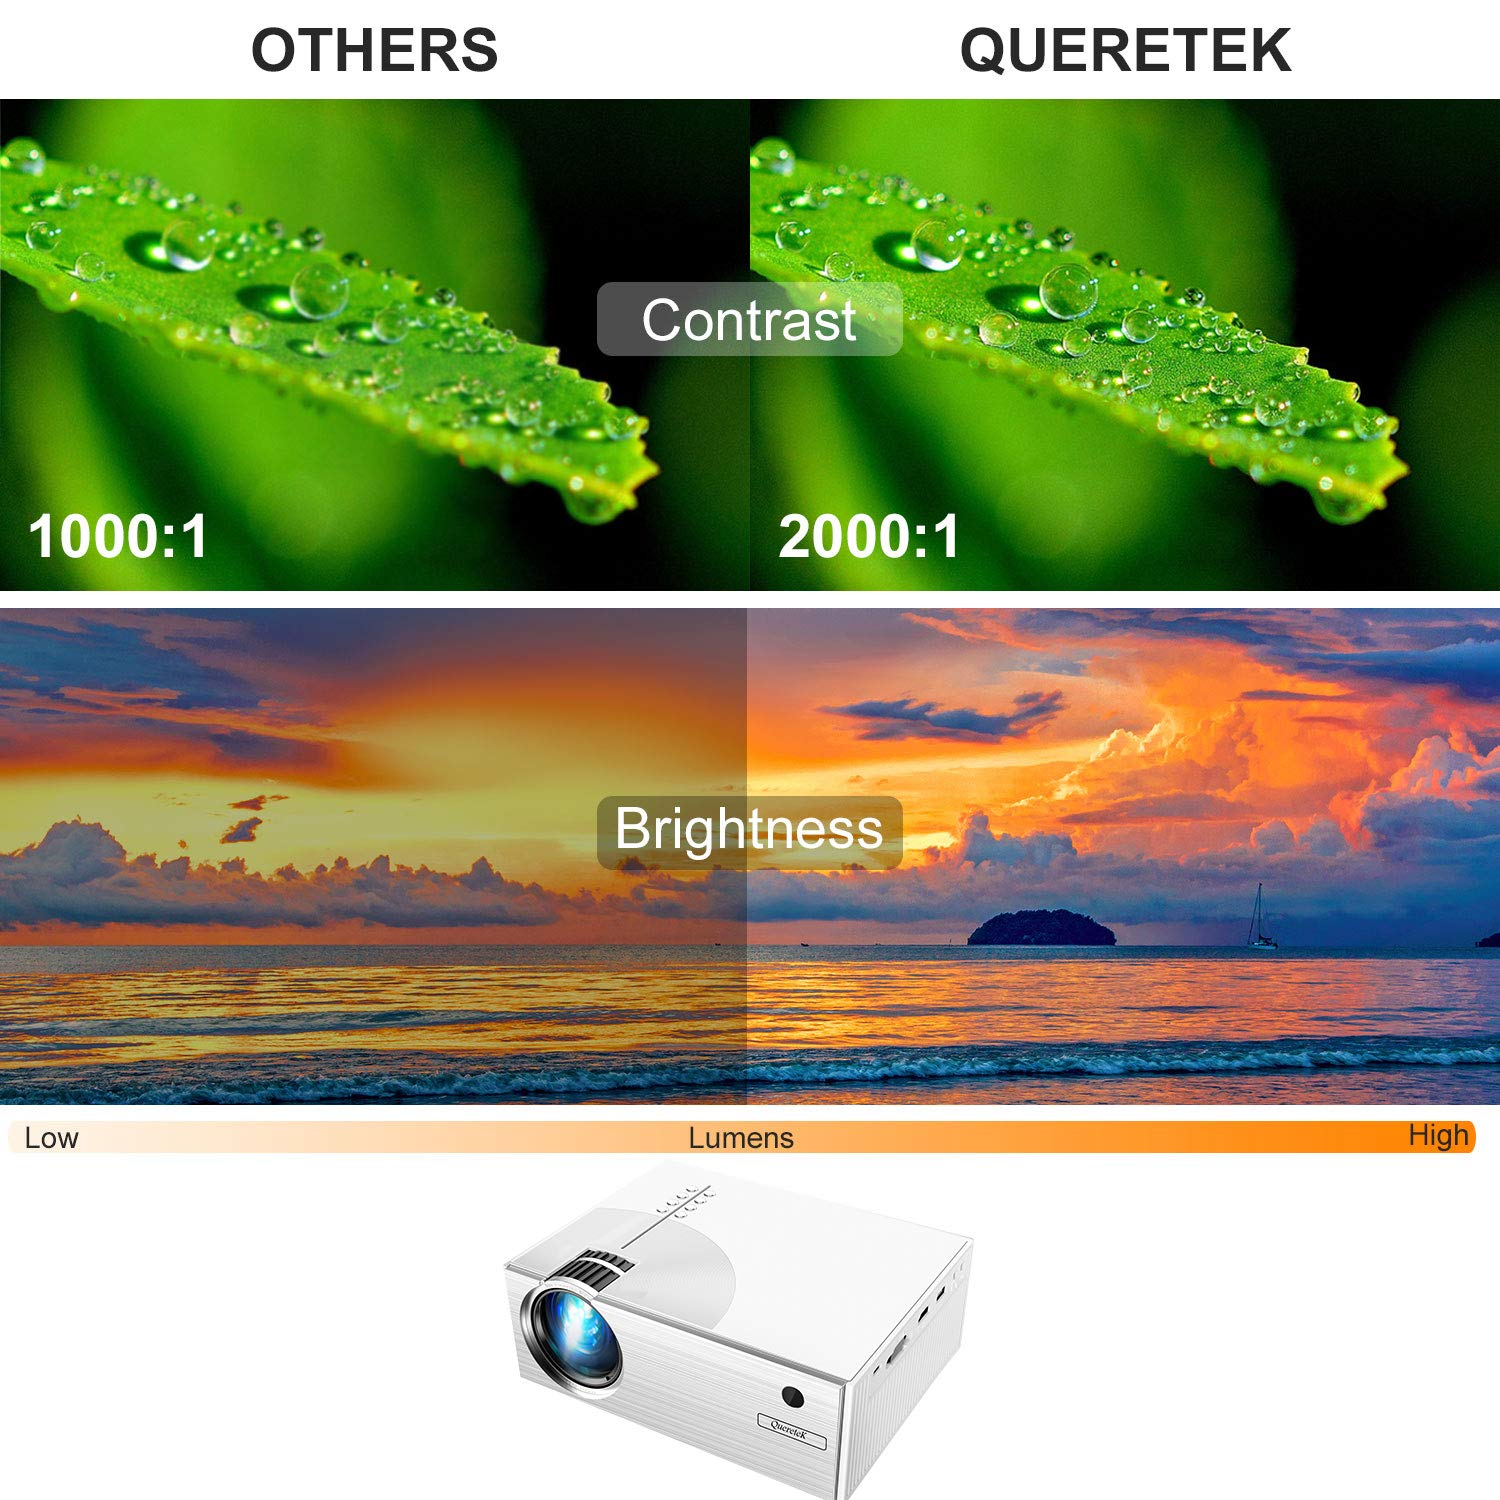 Projector, Queretek Video Projector 2800Lux WiFi Direct, HD Projector Mini Home Theater Projector Support 1080P, with HDMI Cable USB VGA AV, Compatible Laptop Tablet Smartphone Amazon Fire TV Stick by Queretek (Image #2)